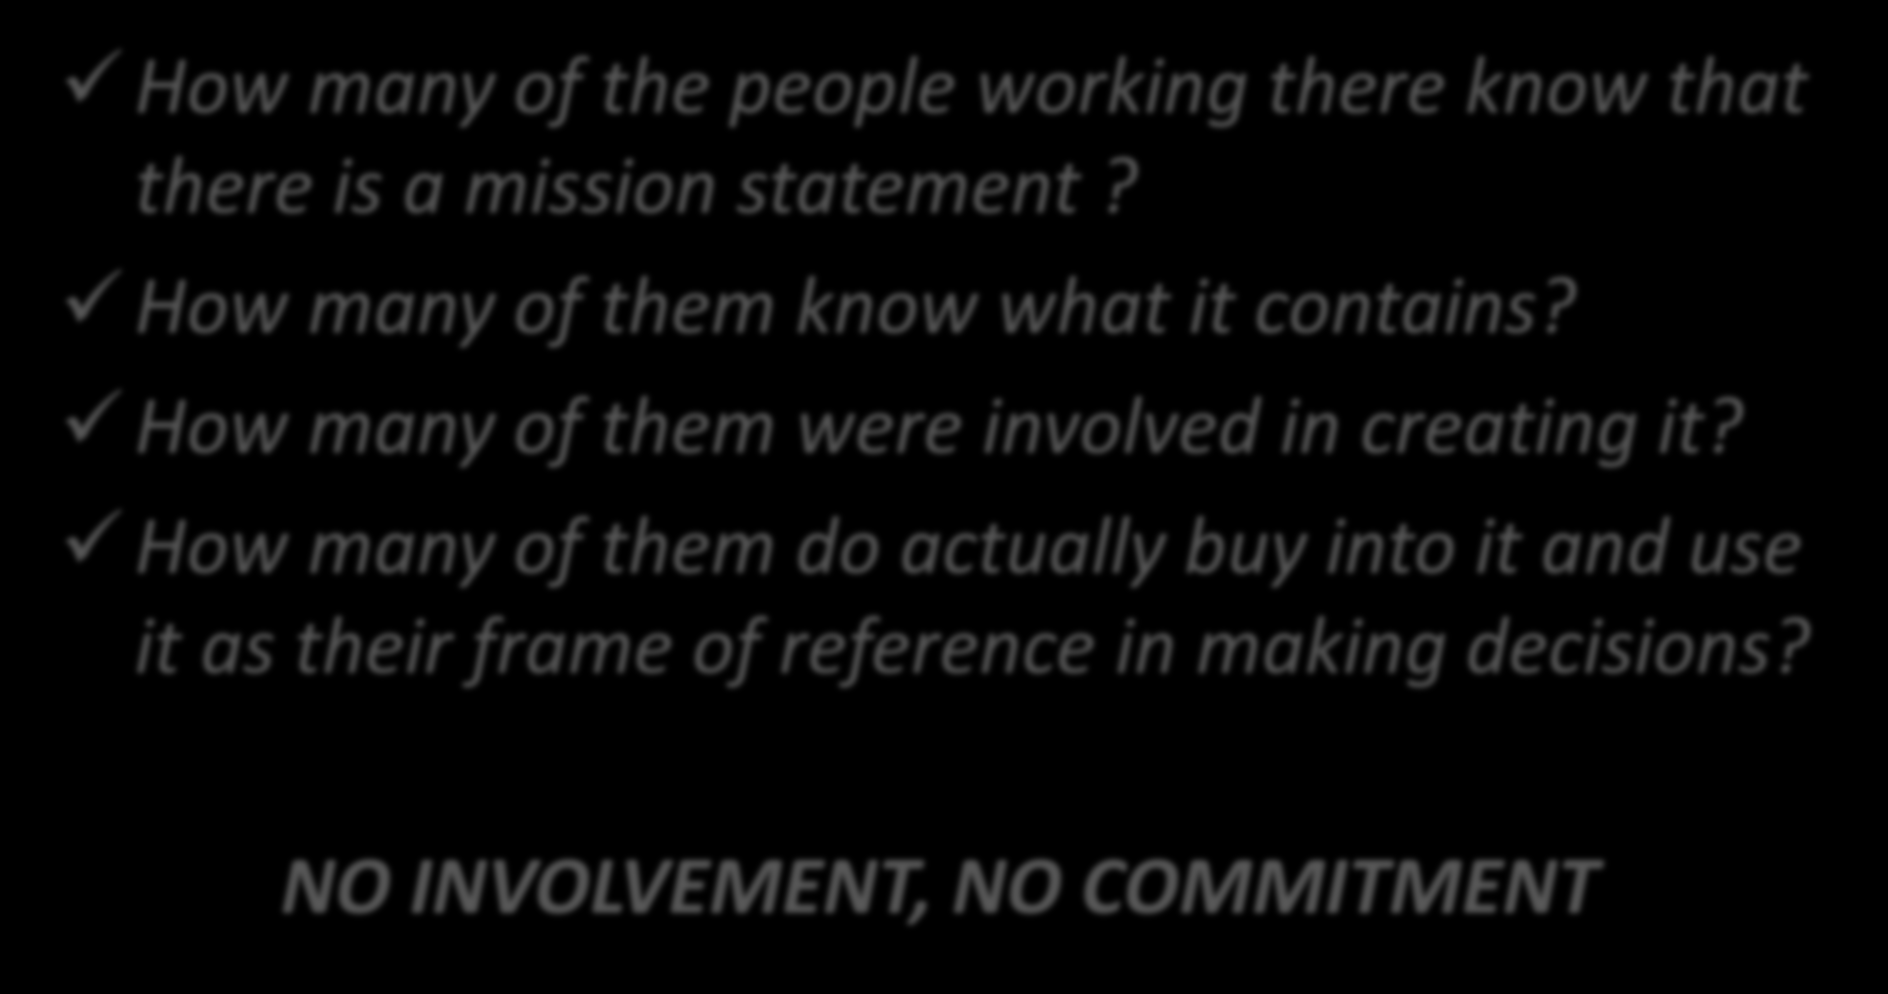 Important! How many of the people working there know that there is a mission statement? How many of them know what it contains?